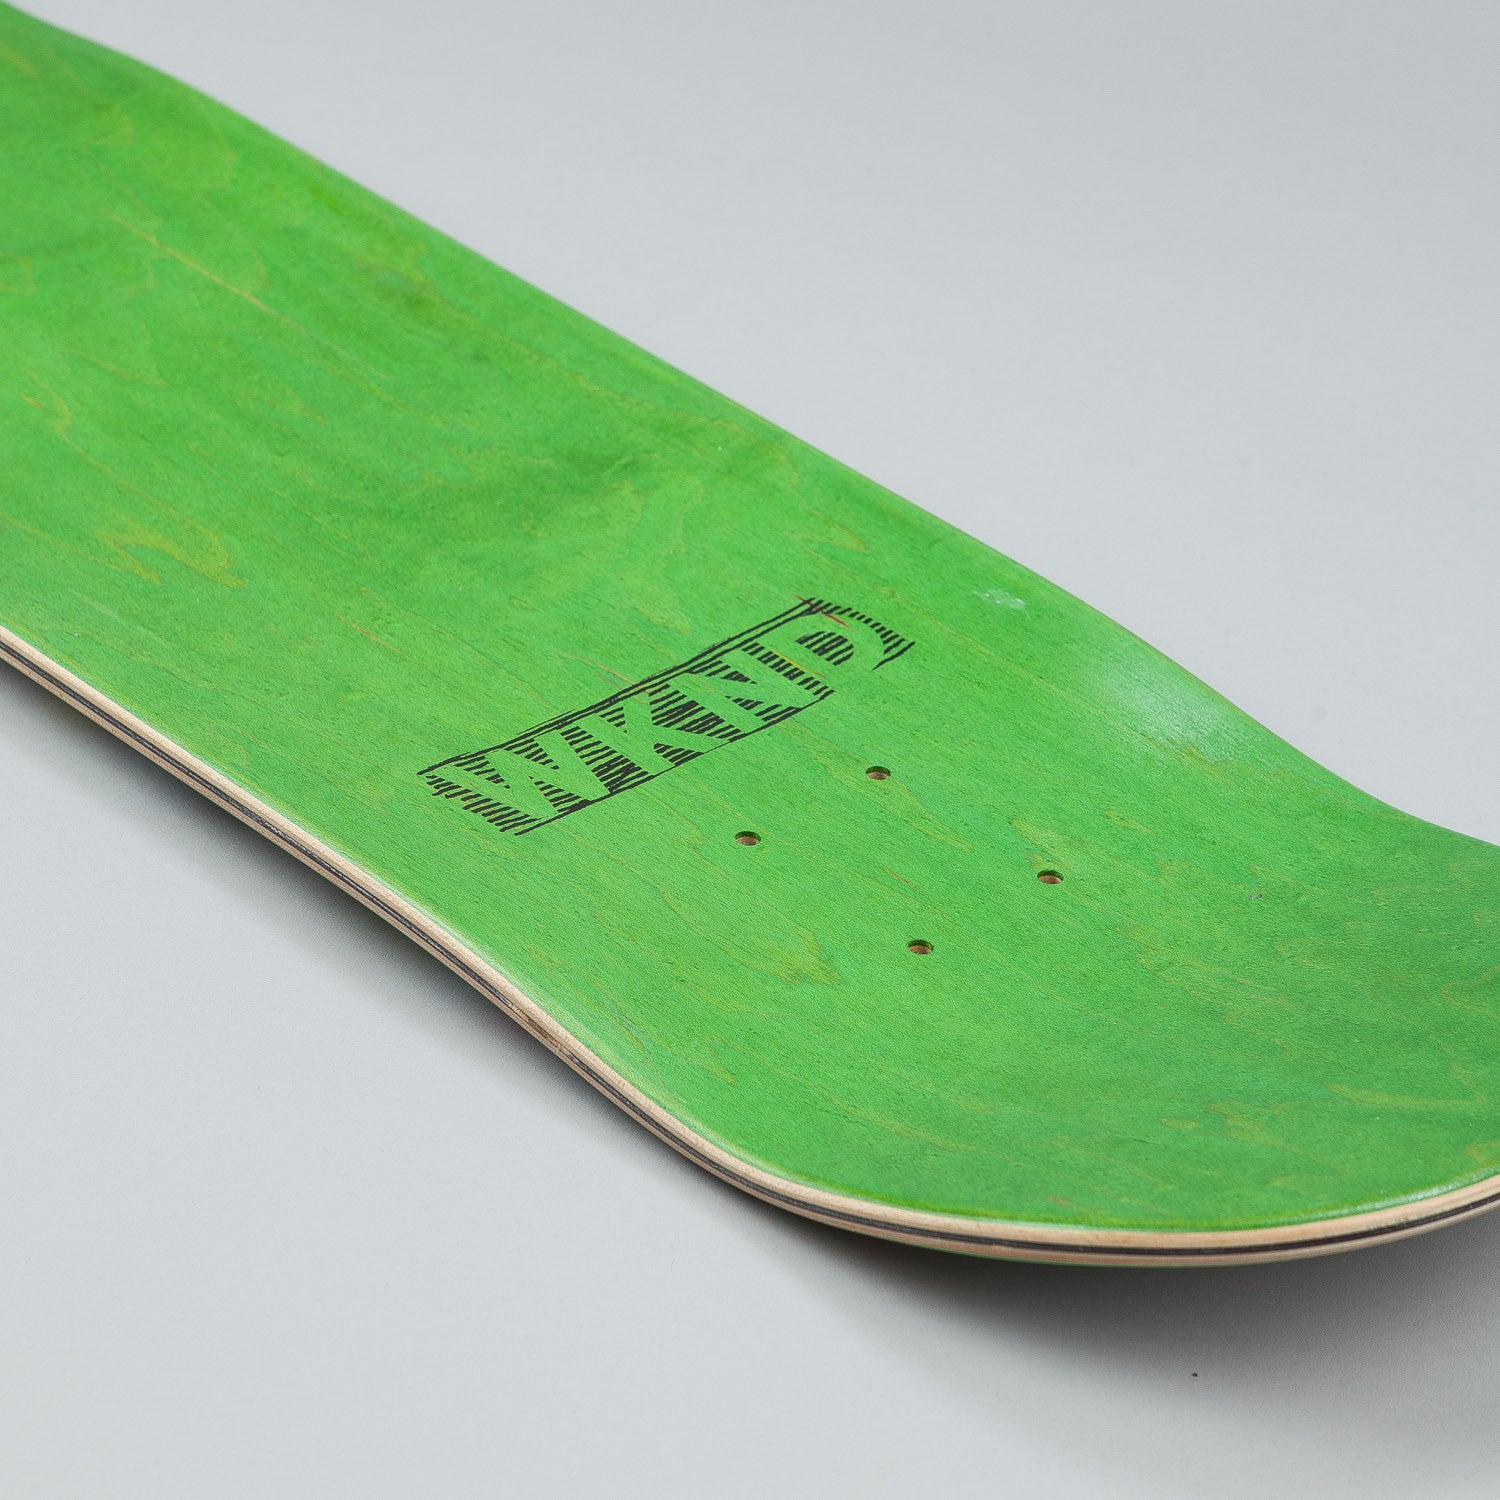 WKND Kurt & Courtney Deck 8.25""